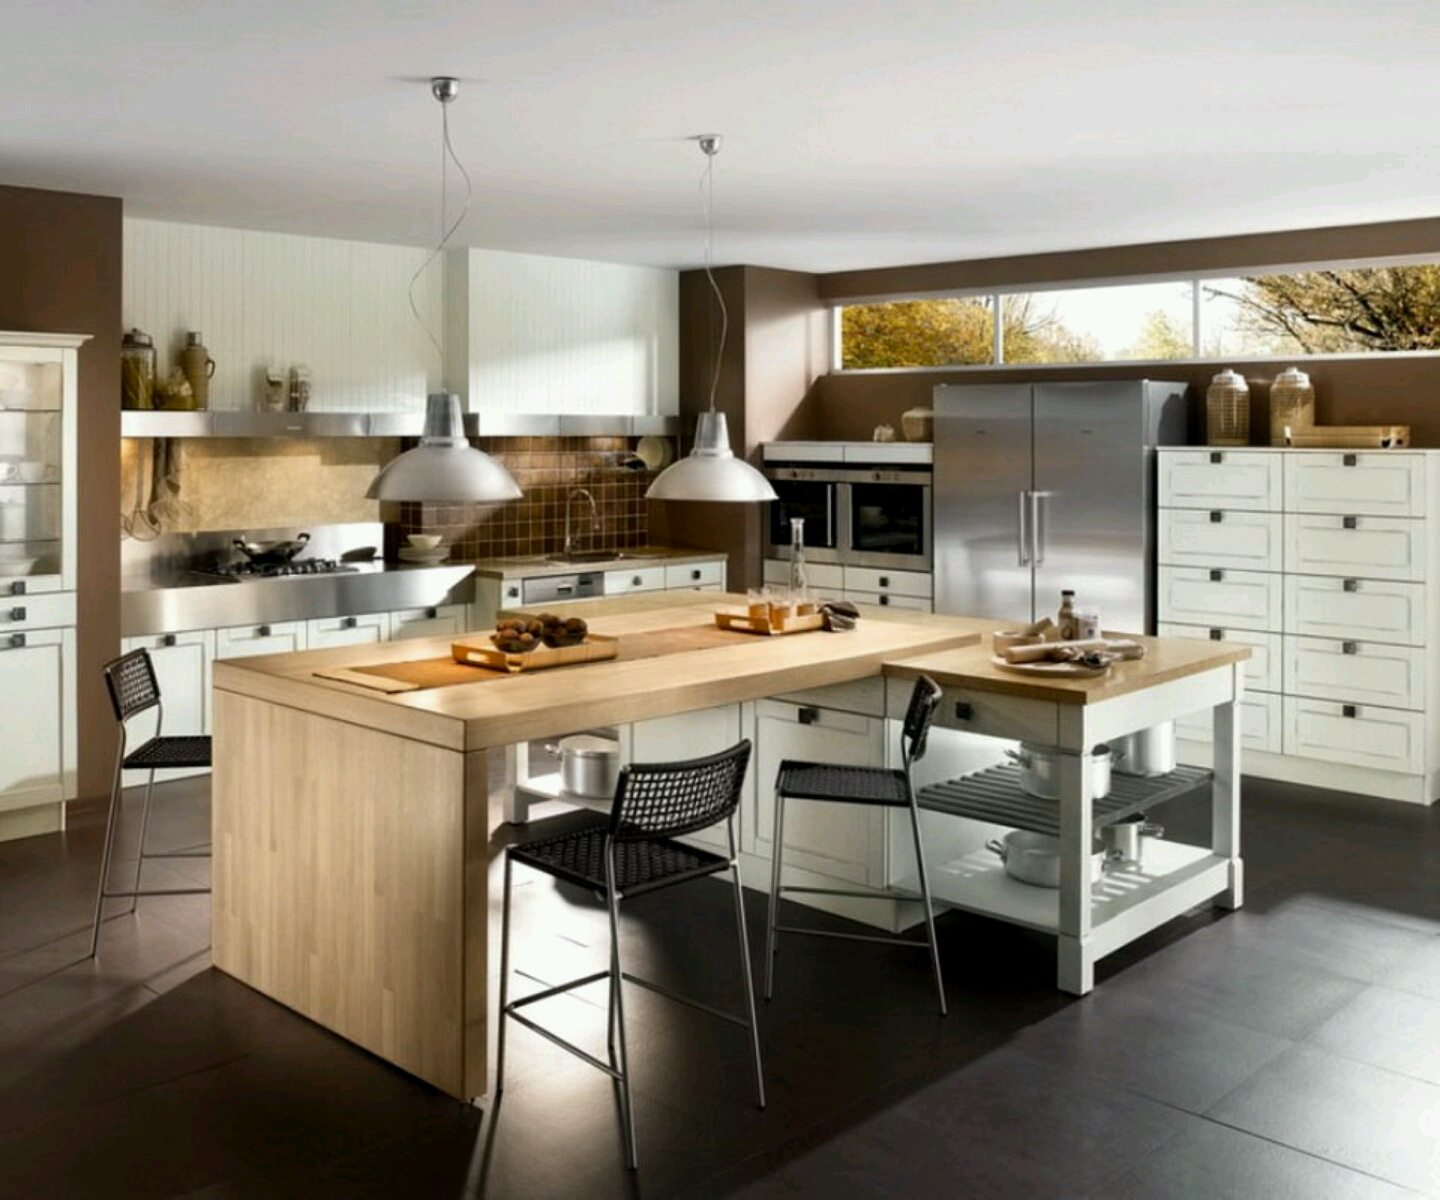 Modern Contemporary Kitchen Design: New Home Designs Latest.: Modern Kitchen Designs Ideas